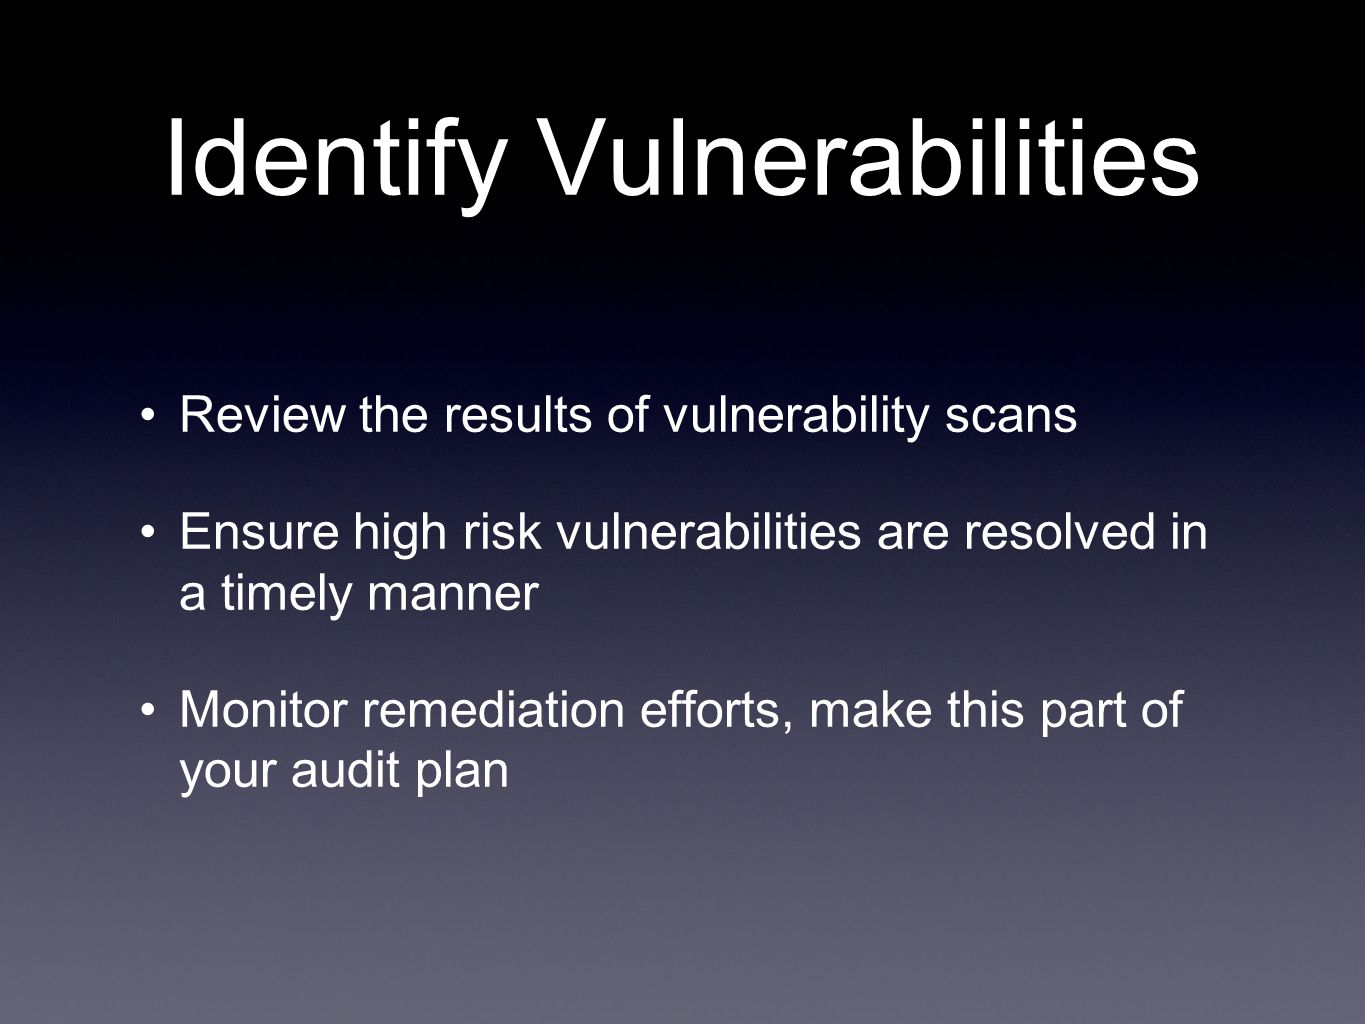 Identify Vulnerabilities Review the results of vulnerability scans Ensure high risk vulnerabilities are resolved in a timely manner Monitor remediation efforts, make this part of your audit plan